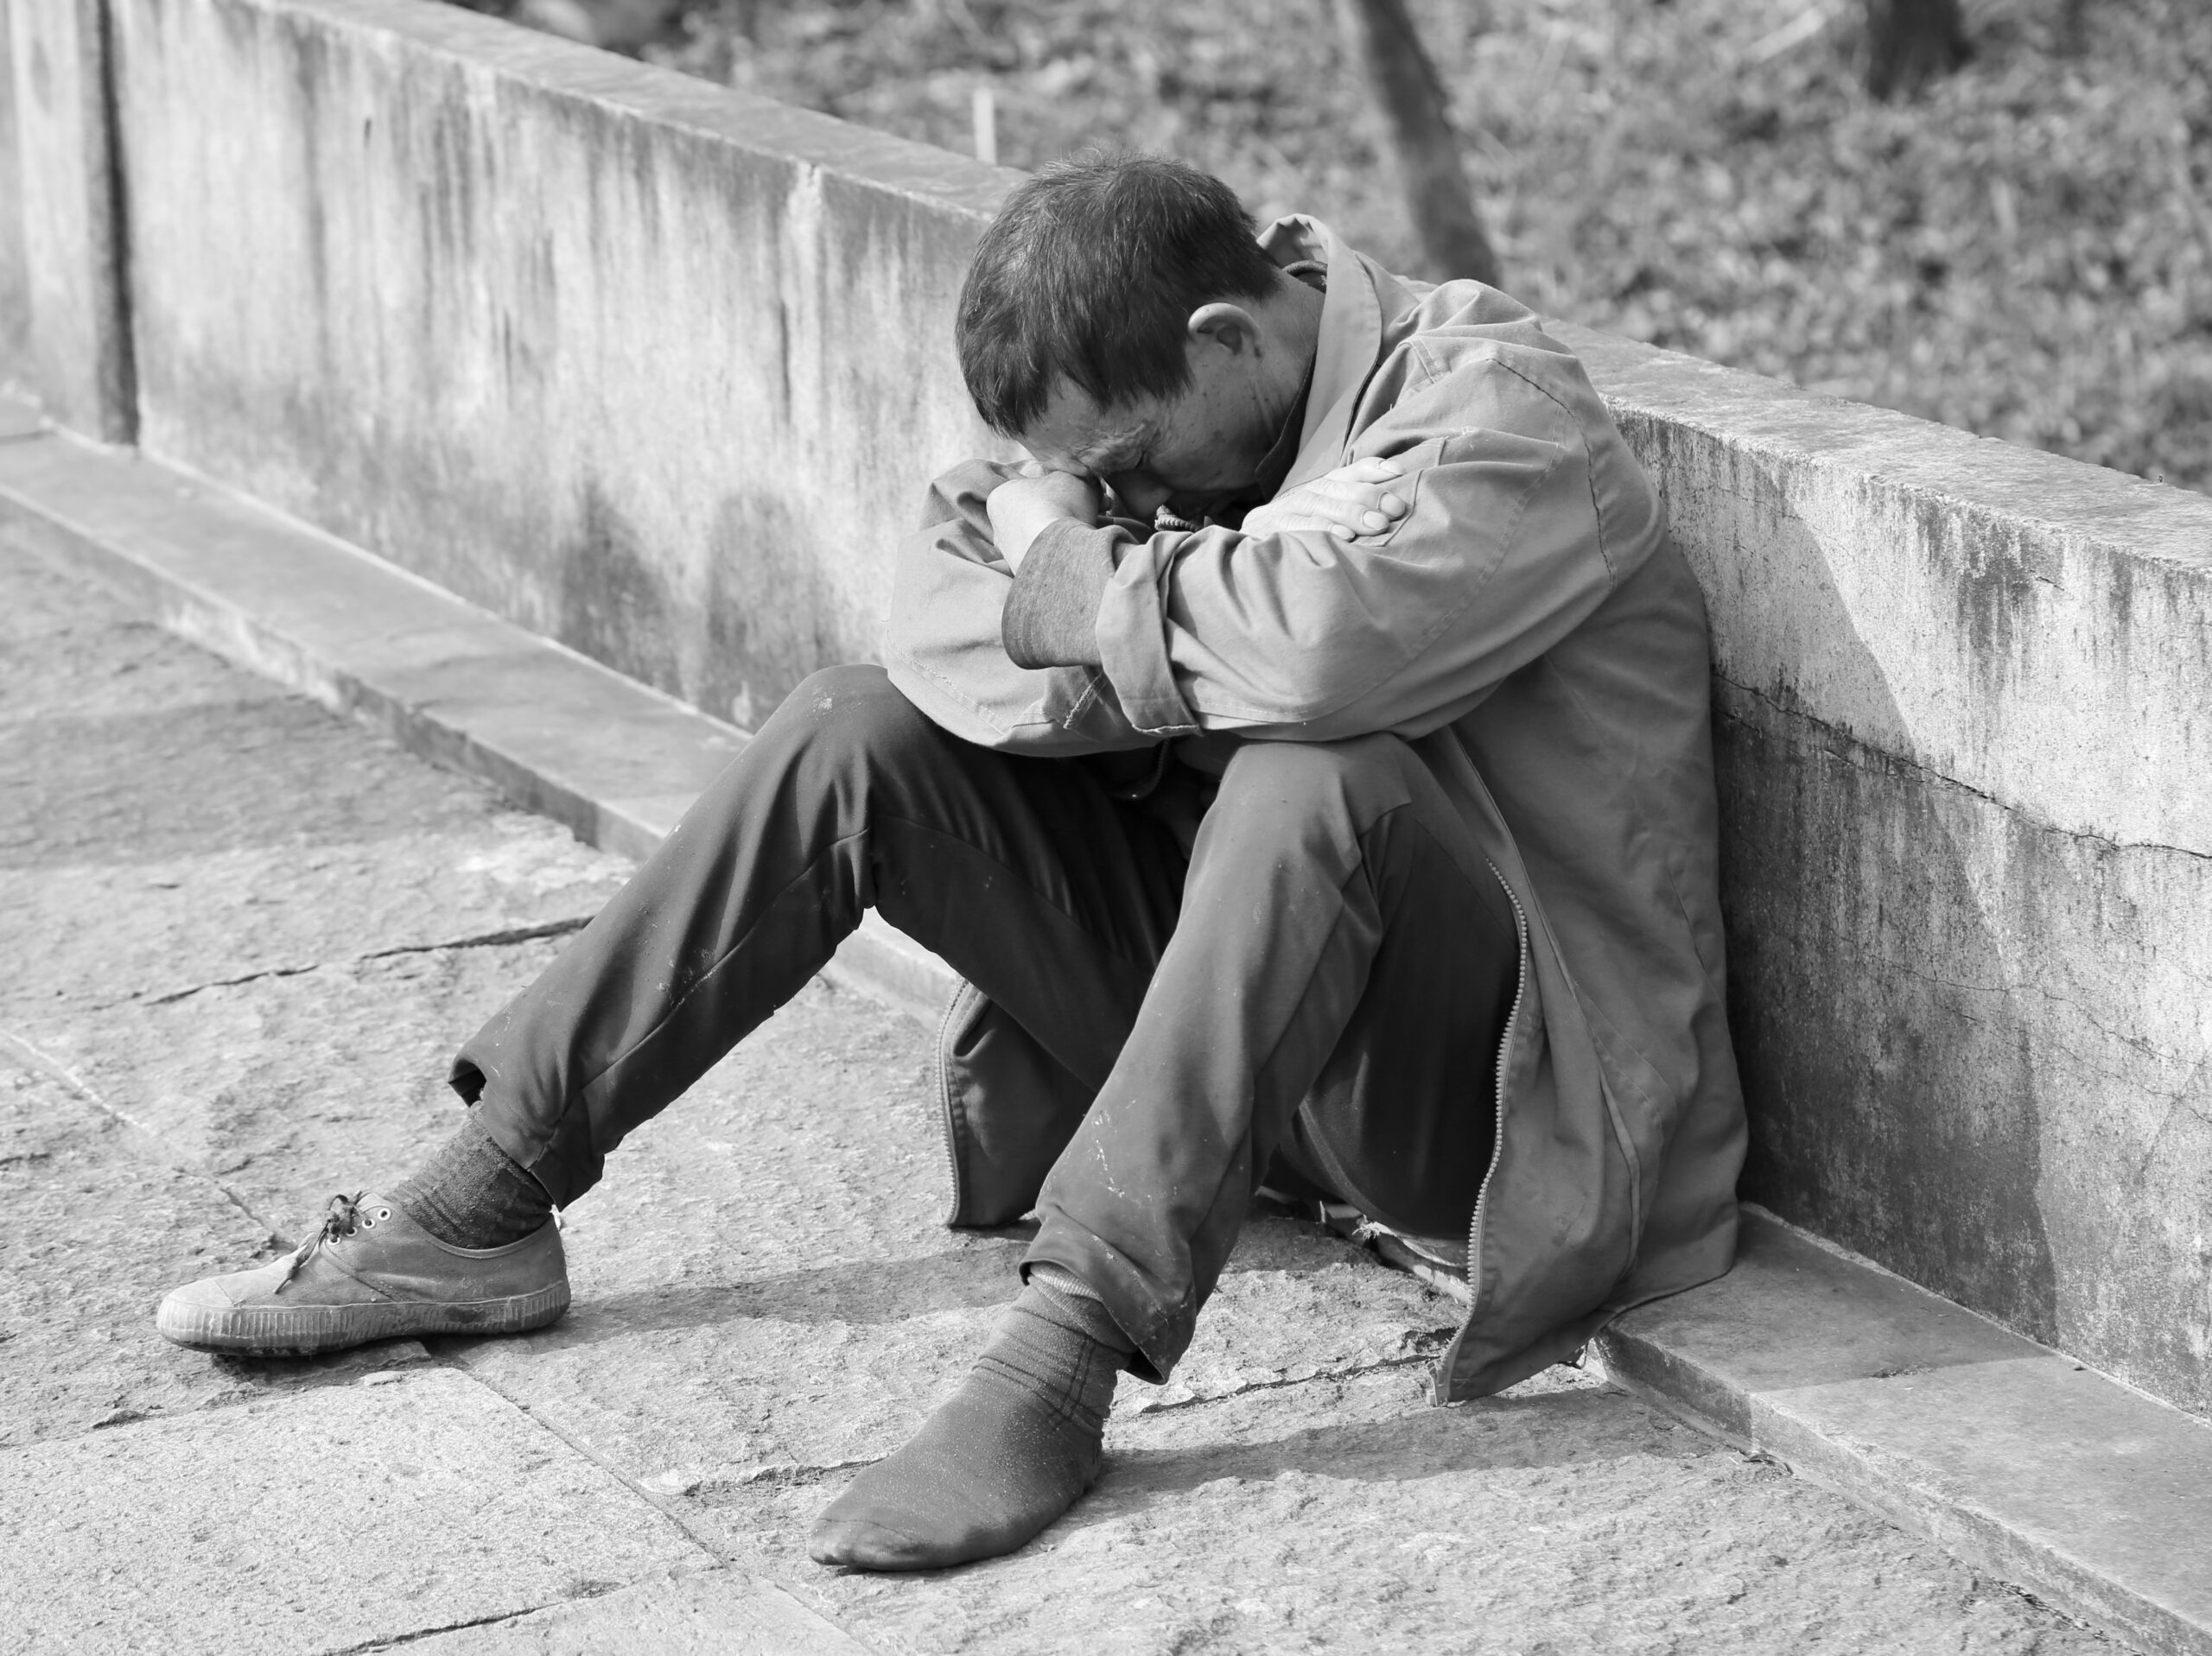 Unemployment and Depression